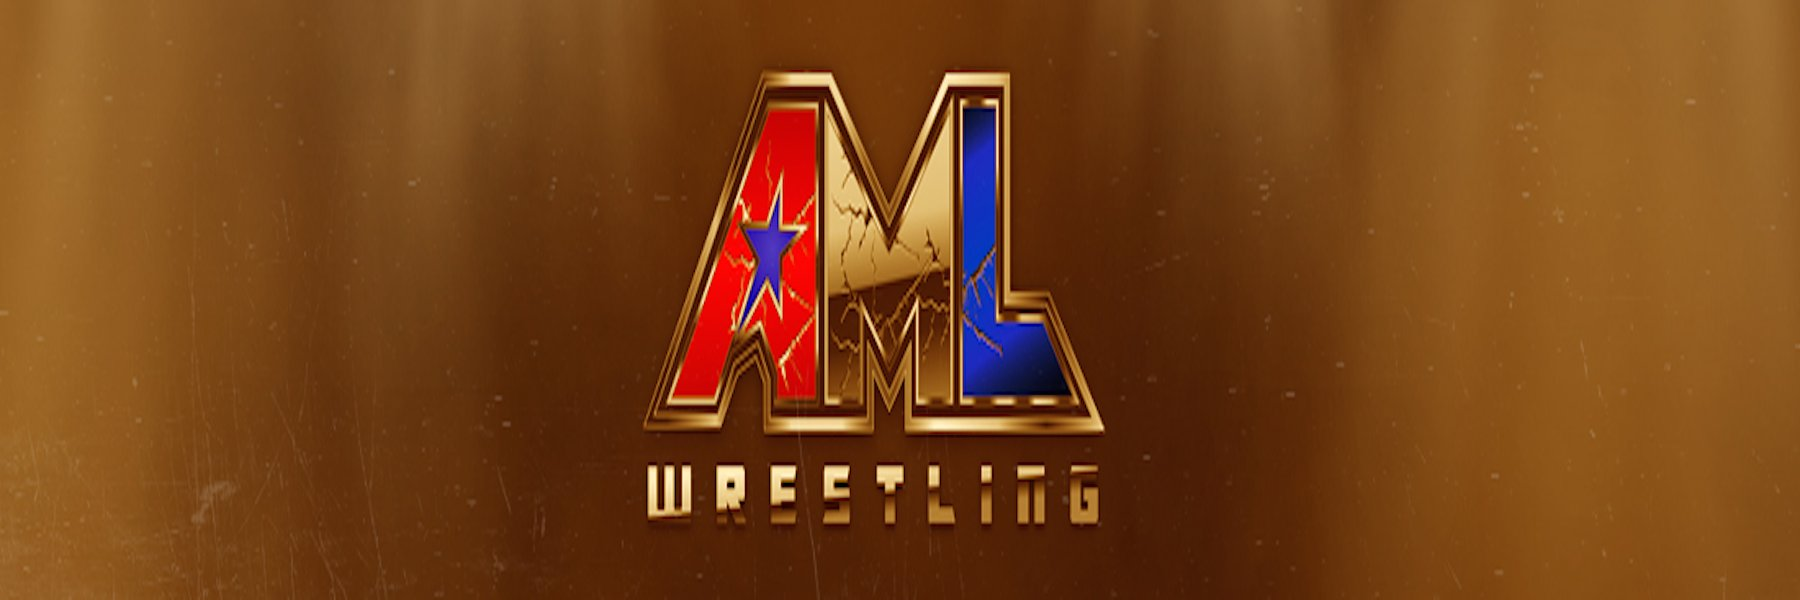 Now Featuring Events From North Carolina's Own AML Wrestling